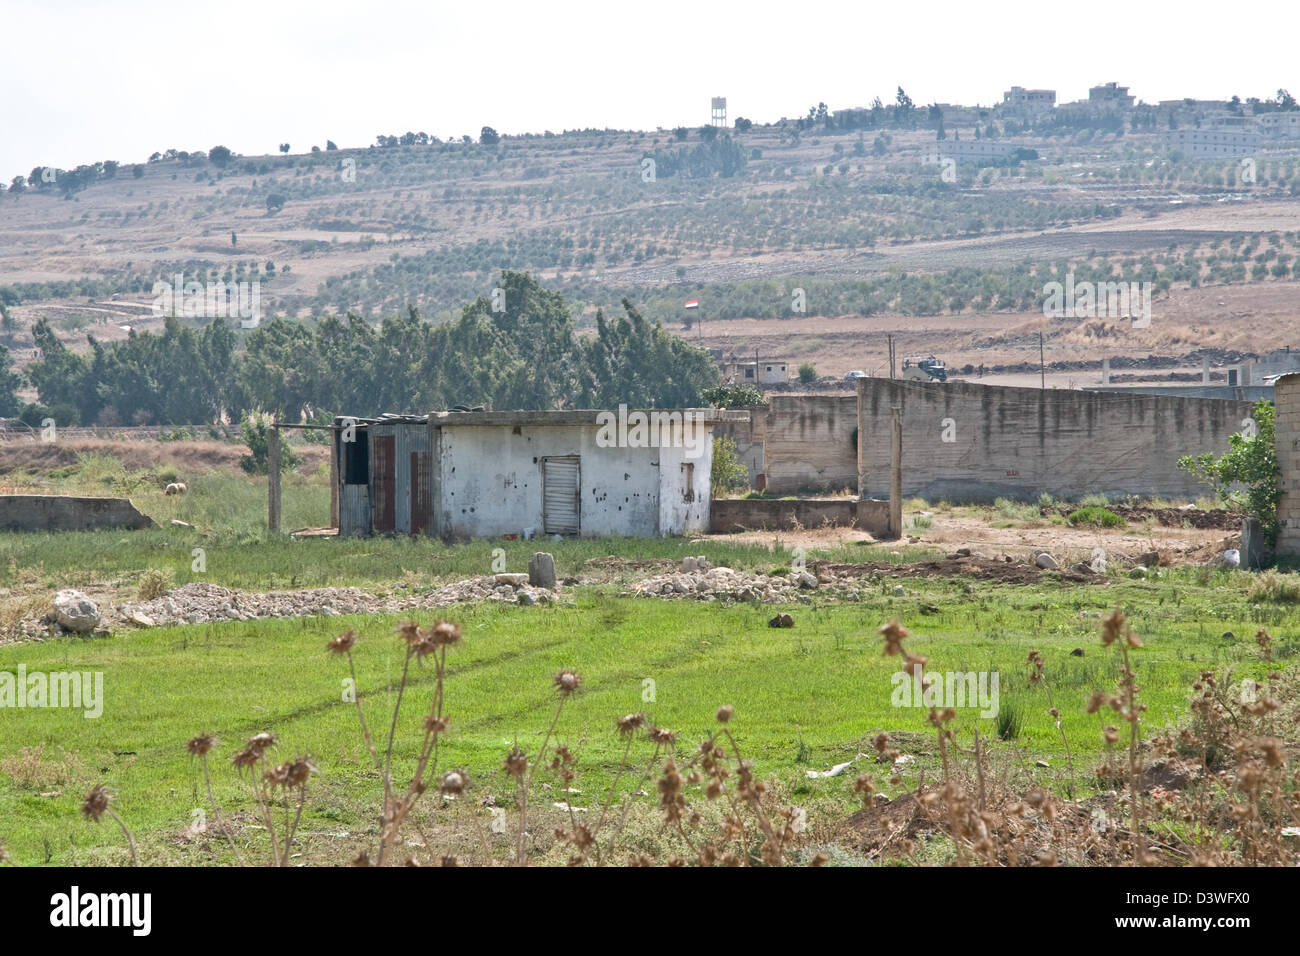 Concrete huts in the northern Lebanese region of Wadi Khaled, located a few metres away from the Syria-Lebanon border - Stock Image